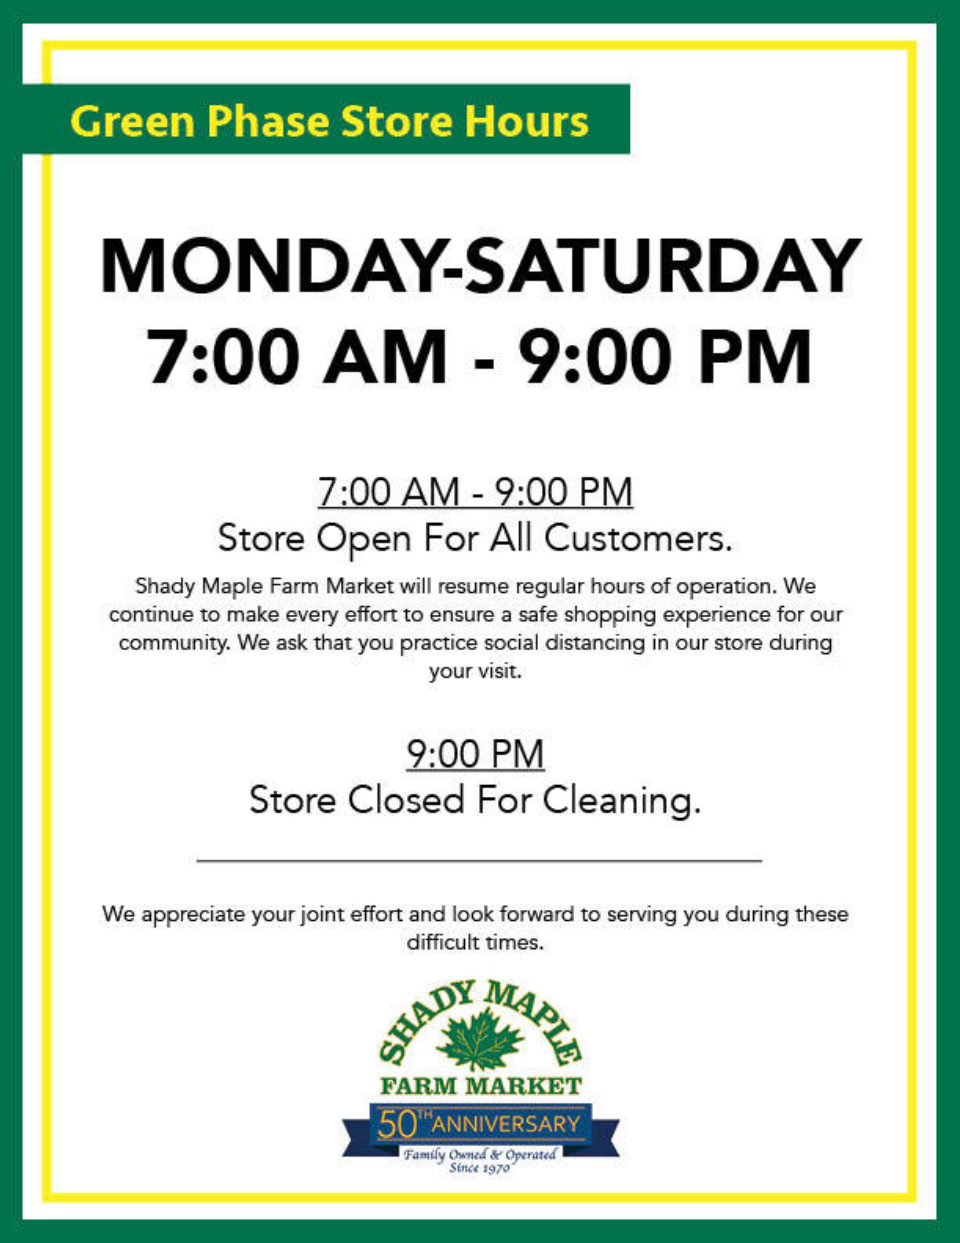 Green Phase Hours